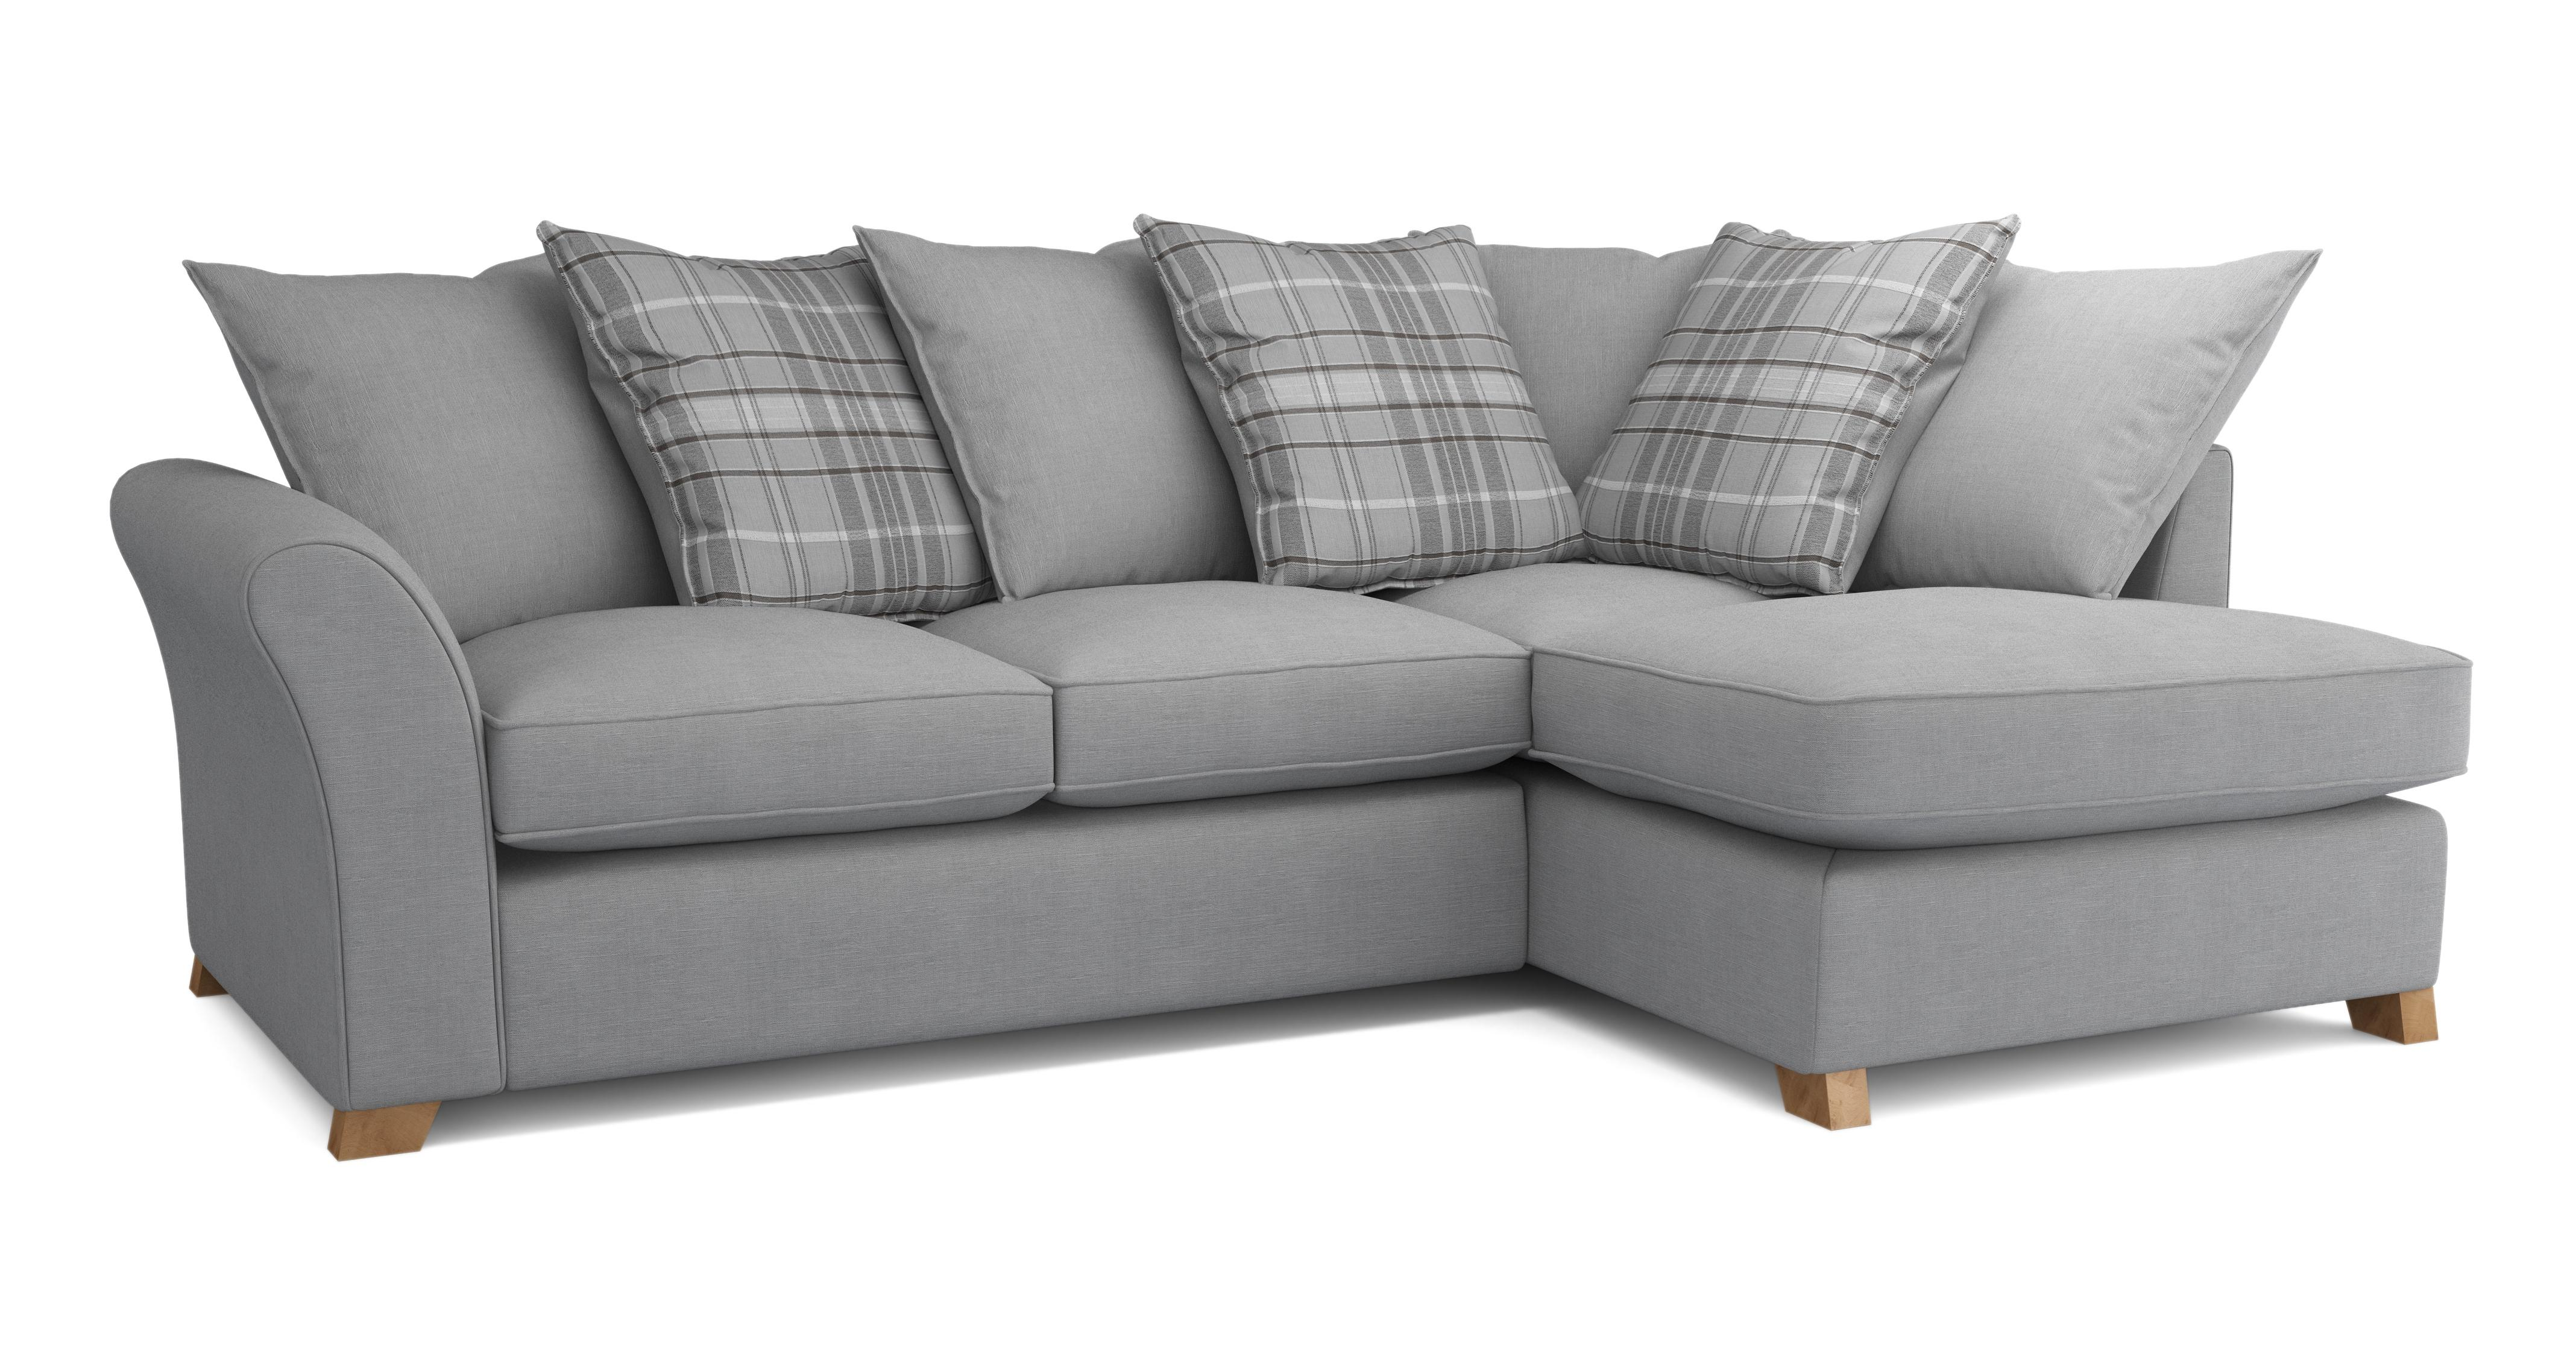 dfs corner sofa grey fabric manufacturers in north carolina jasper ash and storage stool